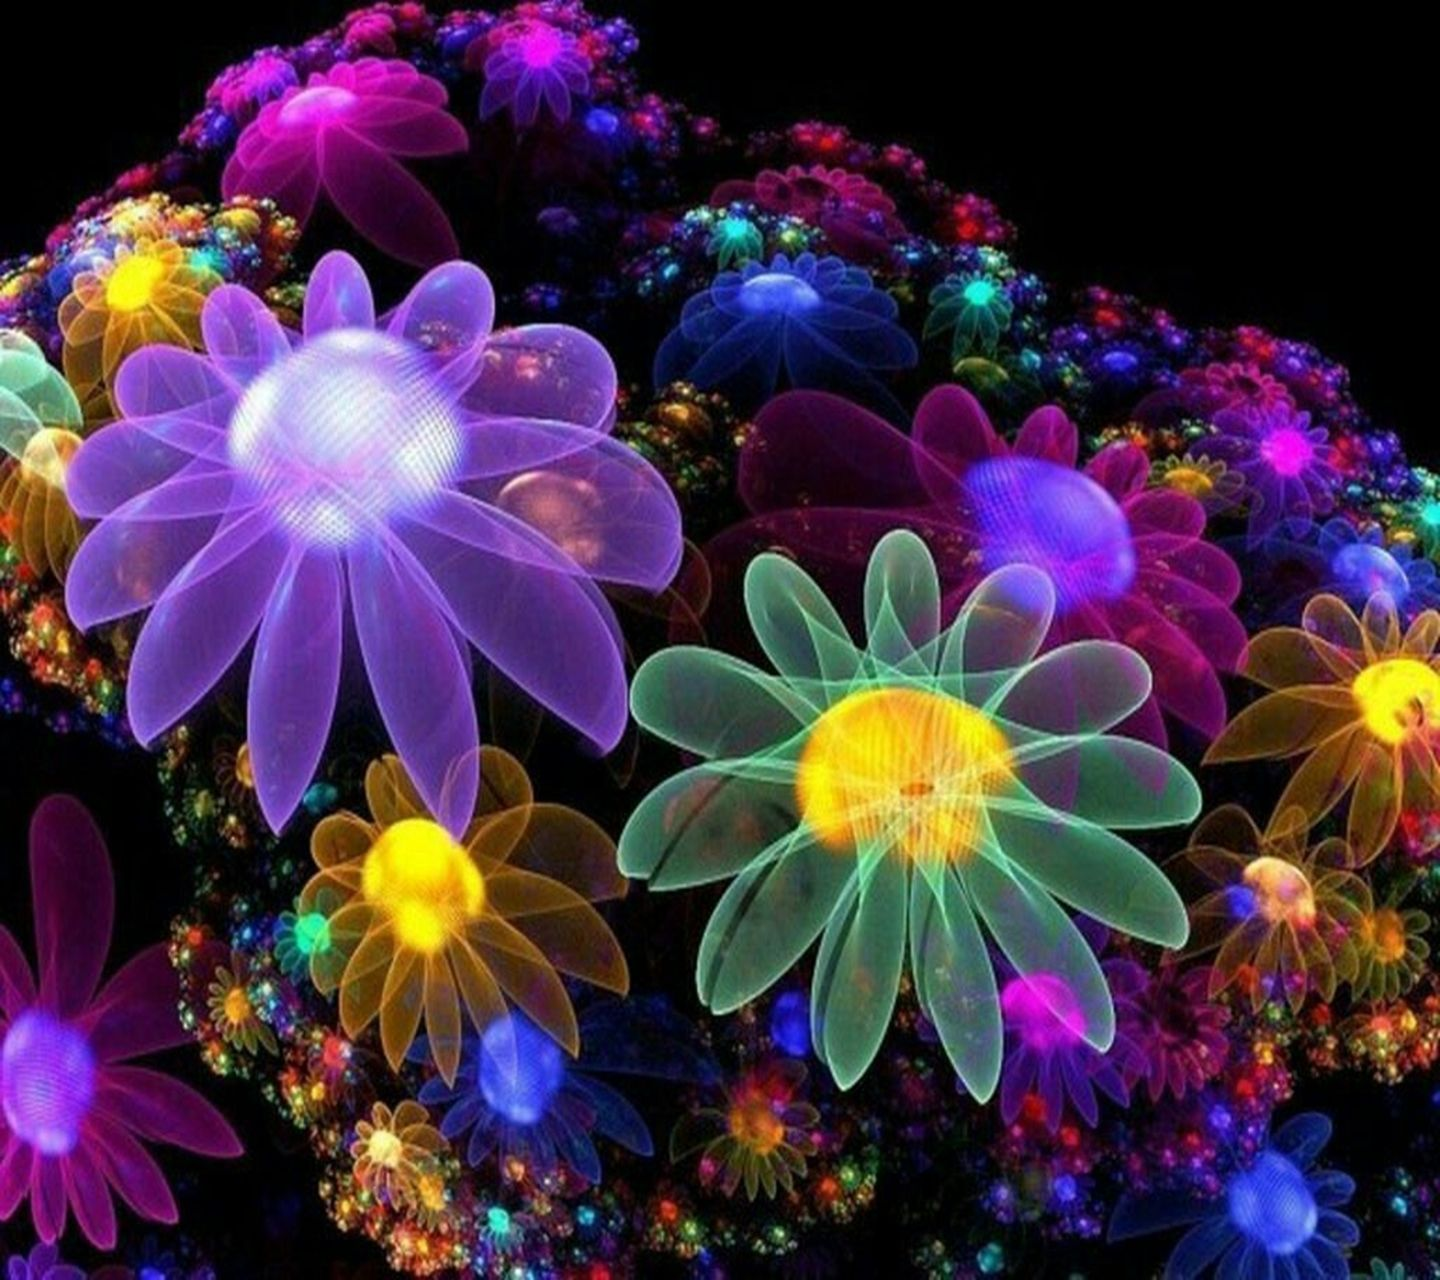 neon flower wallpapers / wallpaper flowers 325 high quality